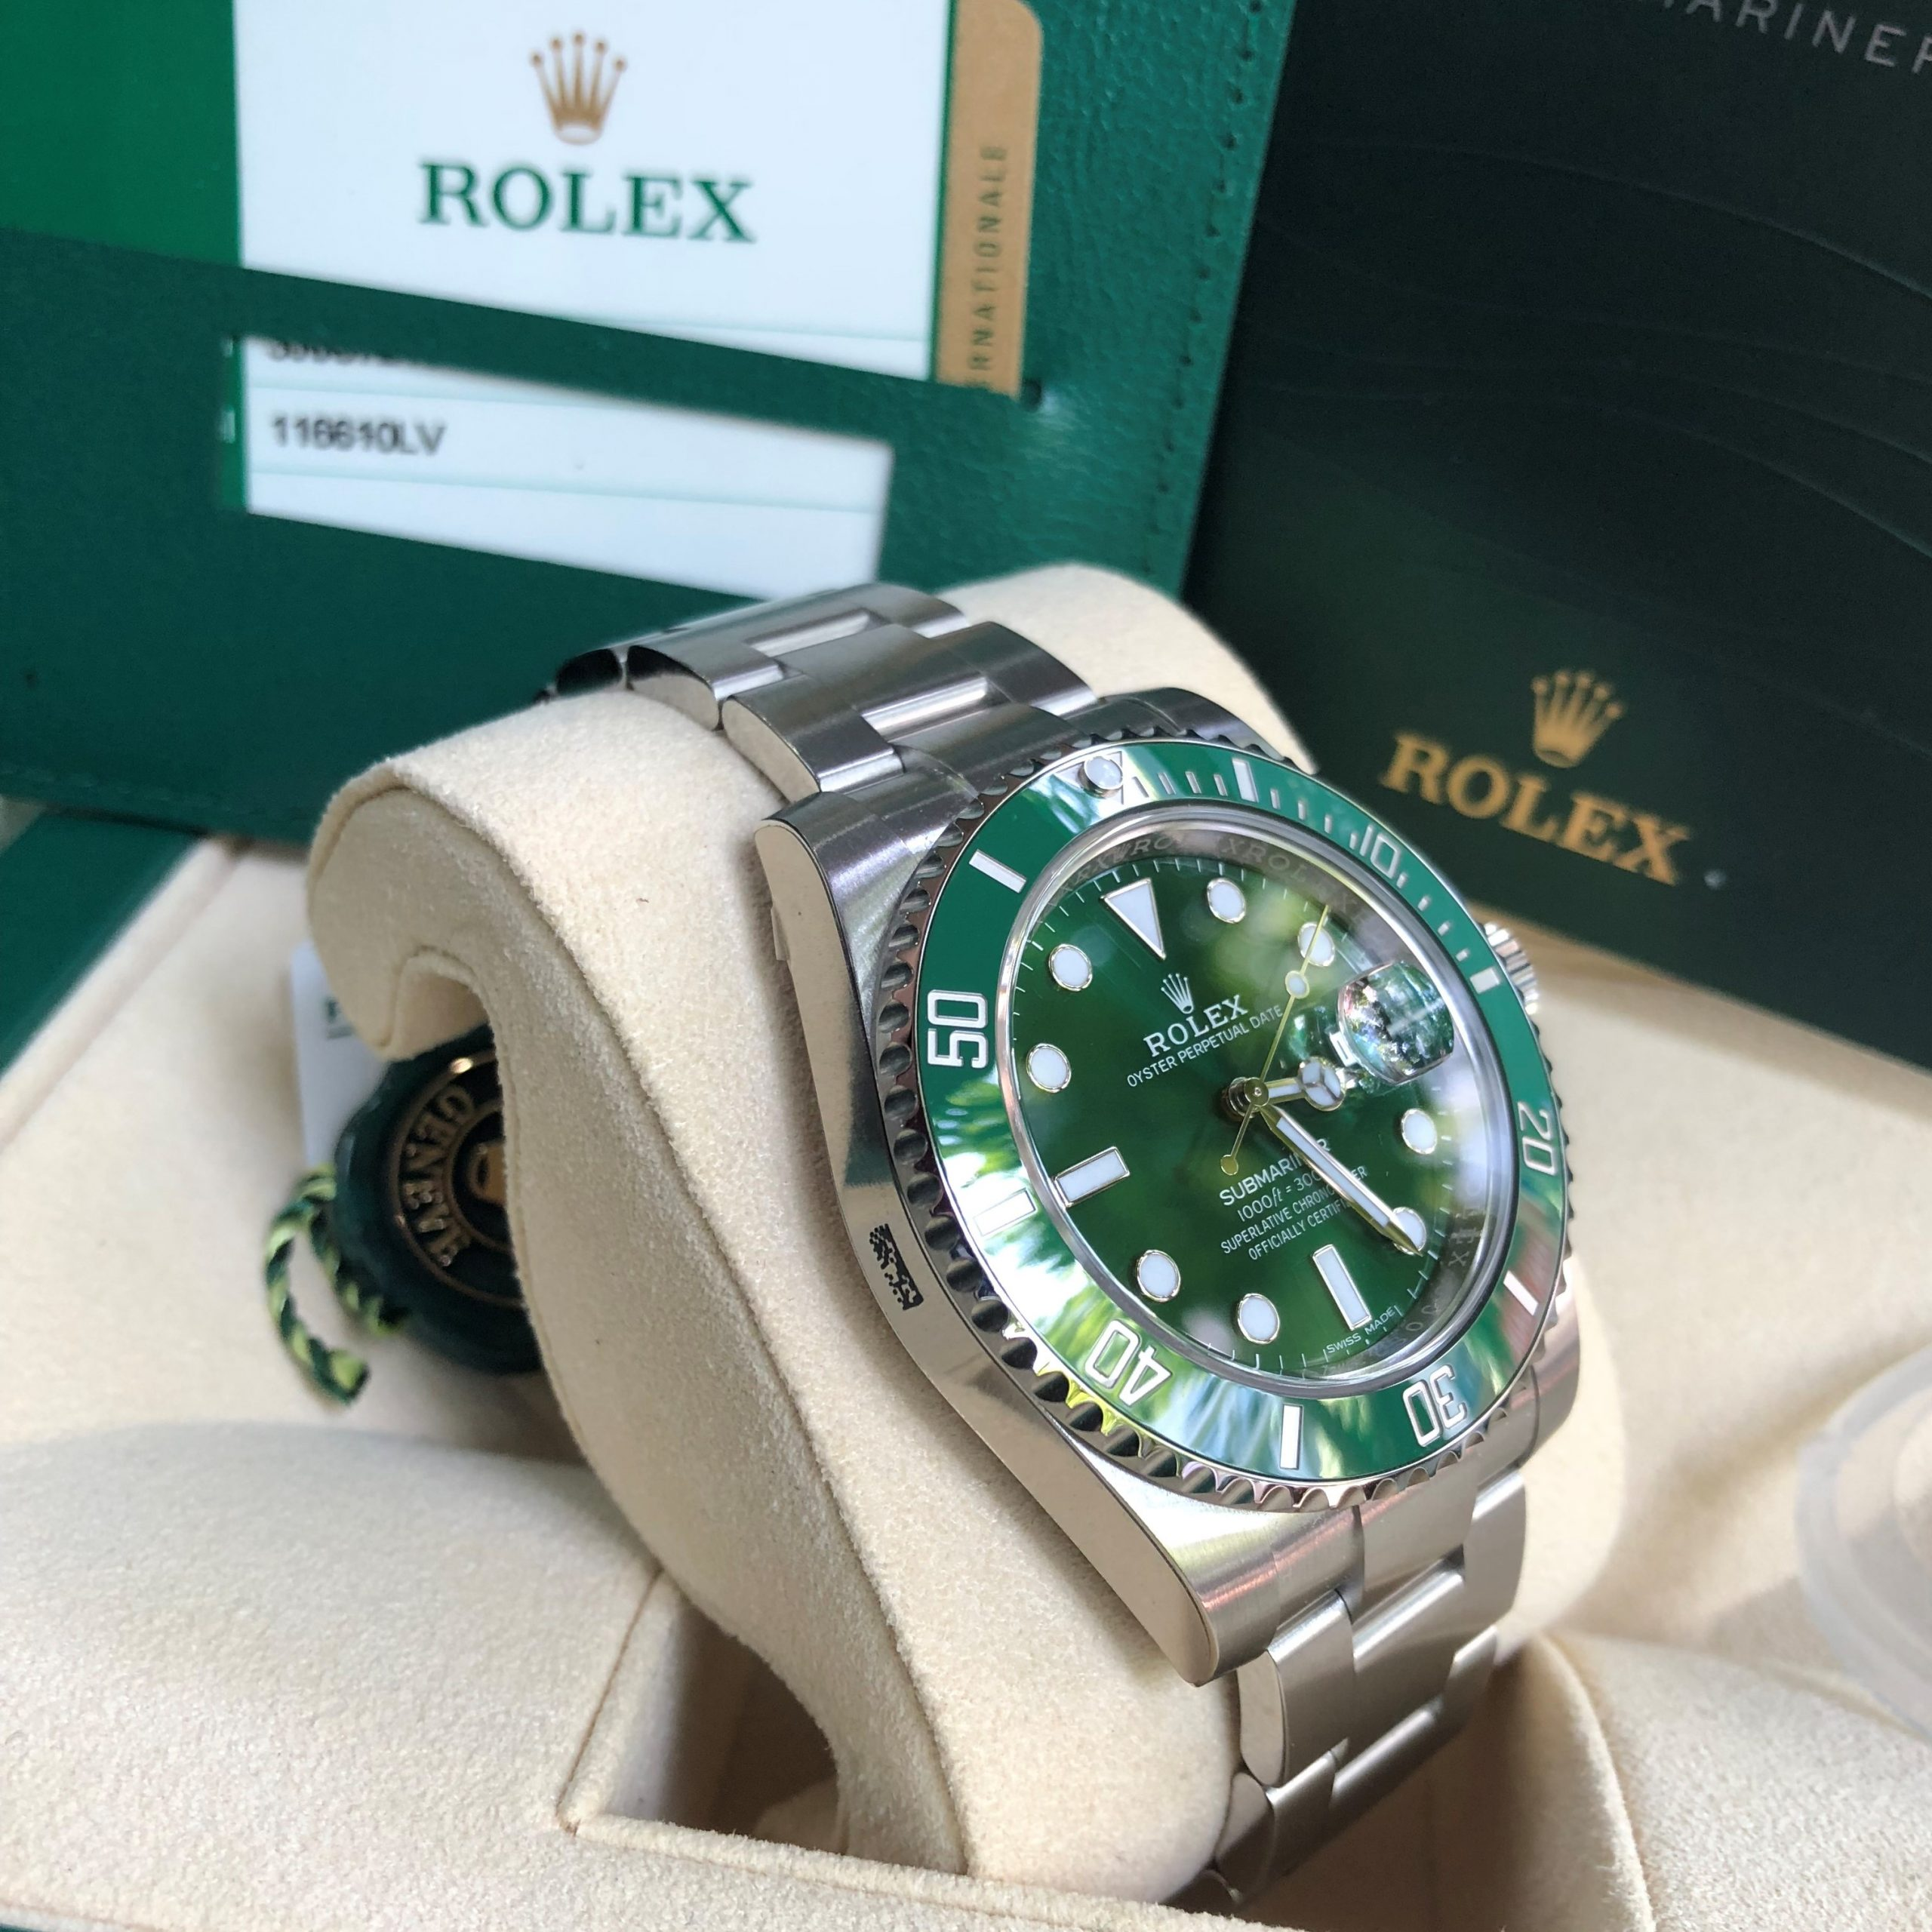 Rolex Submariner 116610LV mặt xanh Stainless steel size 40mm